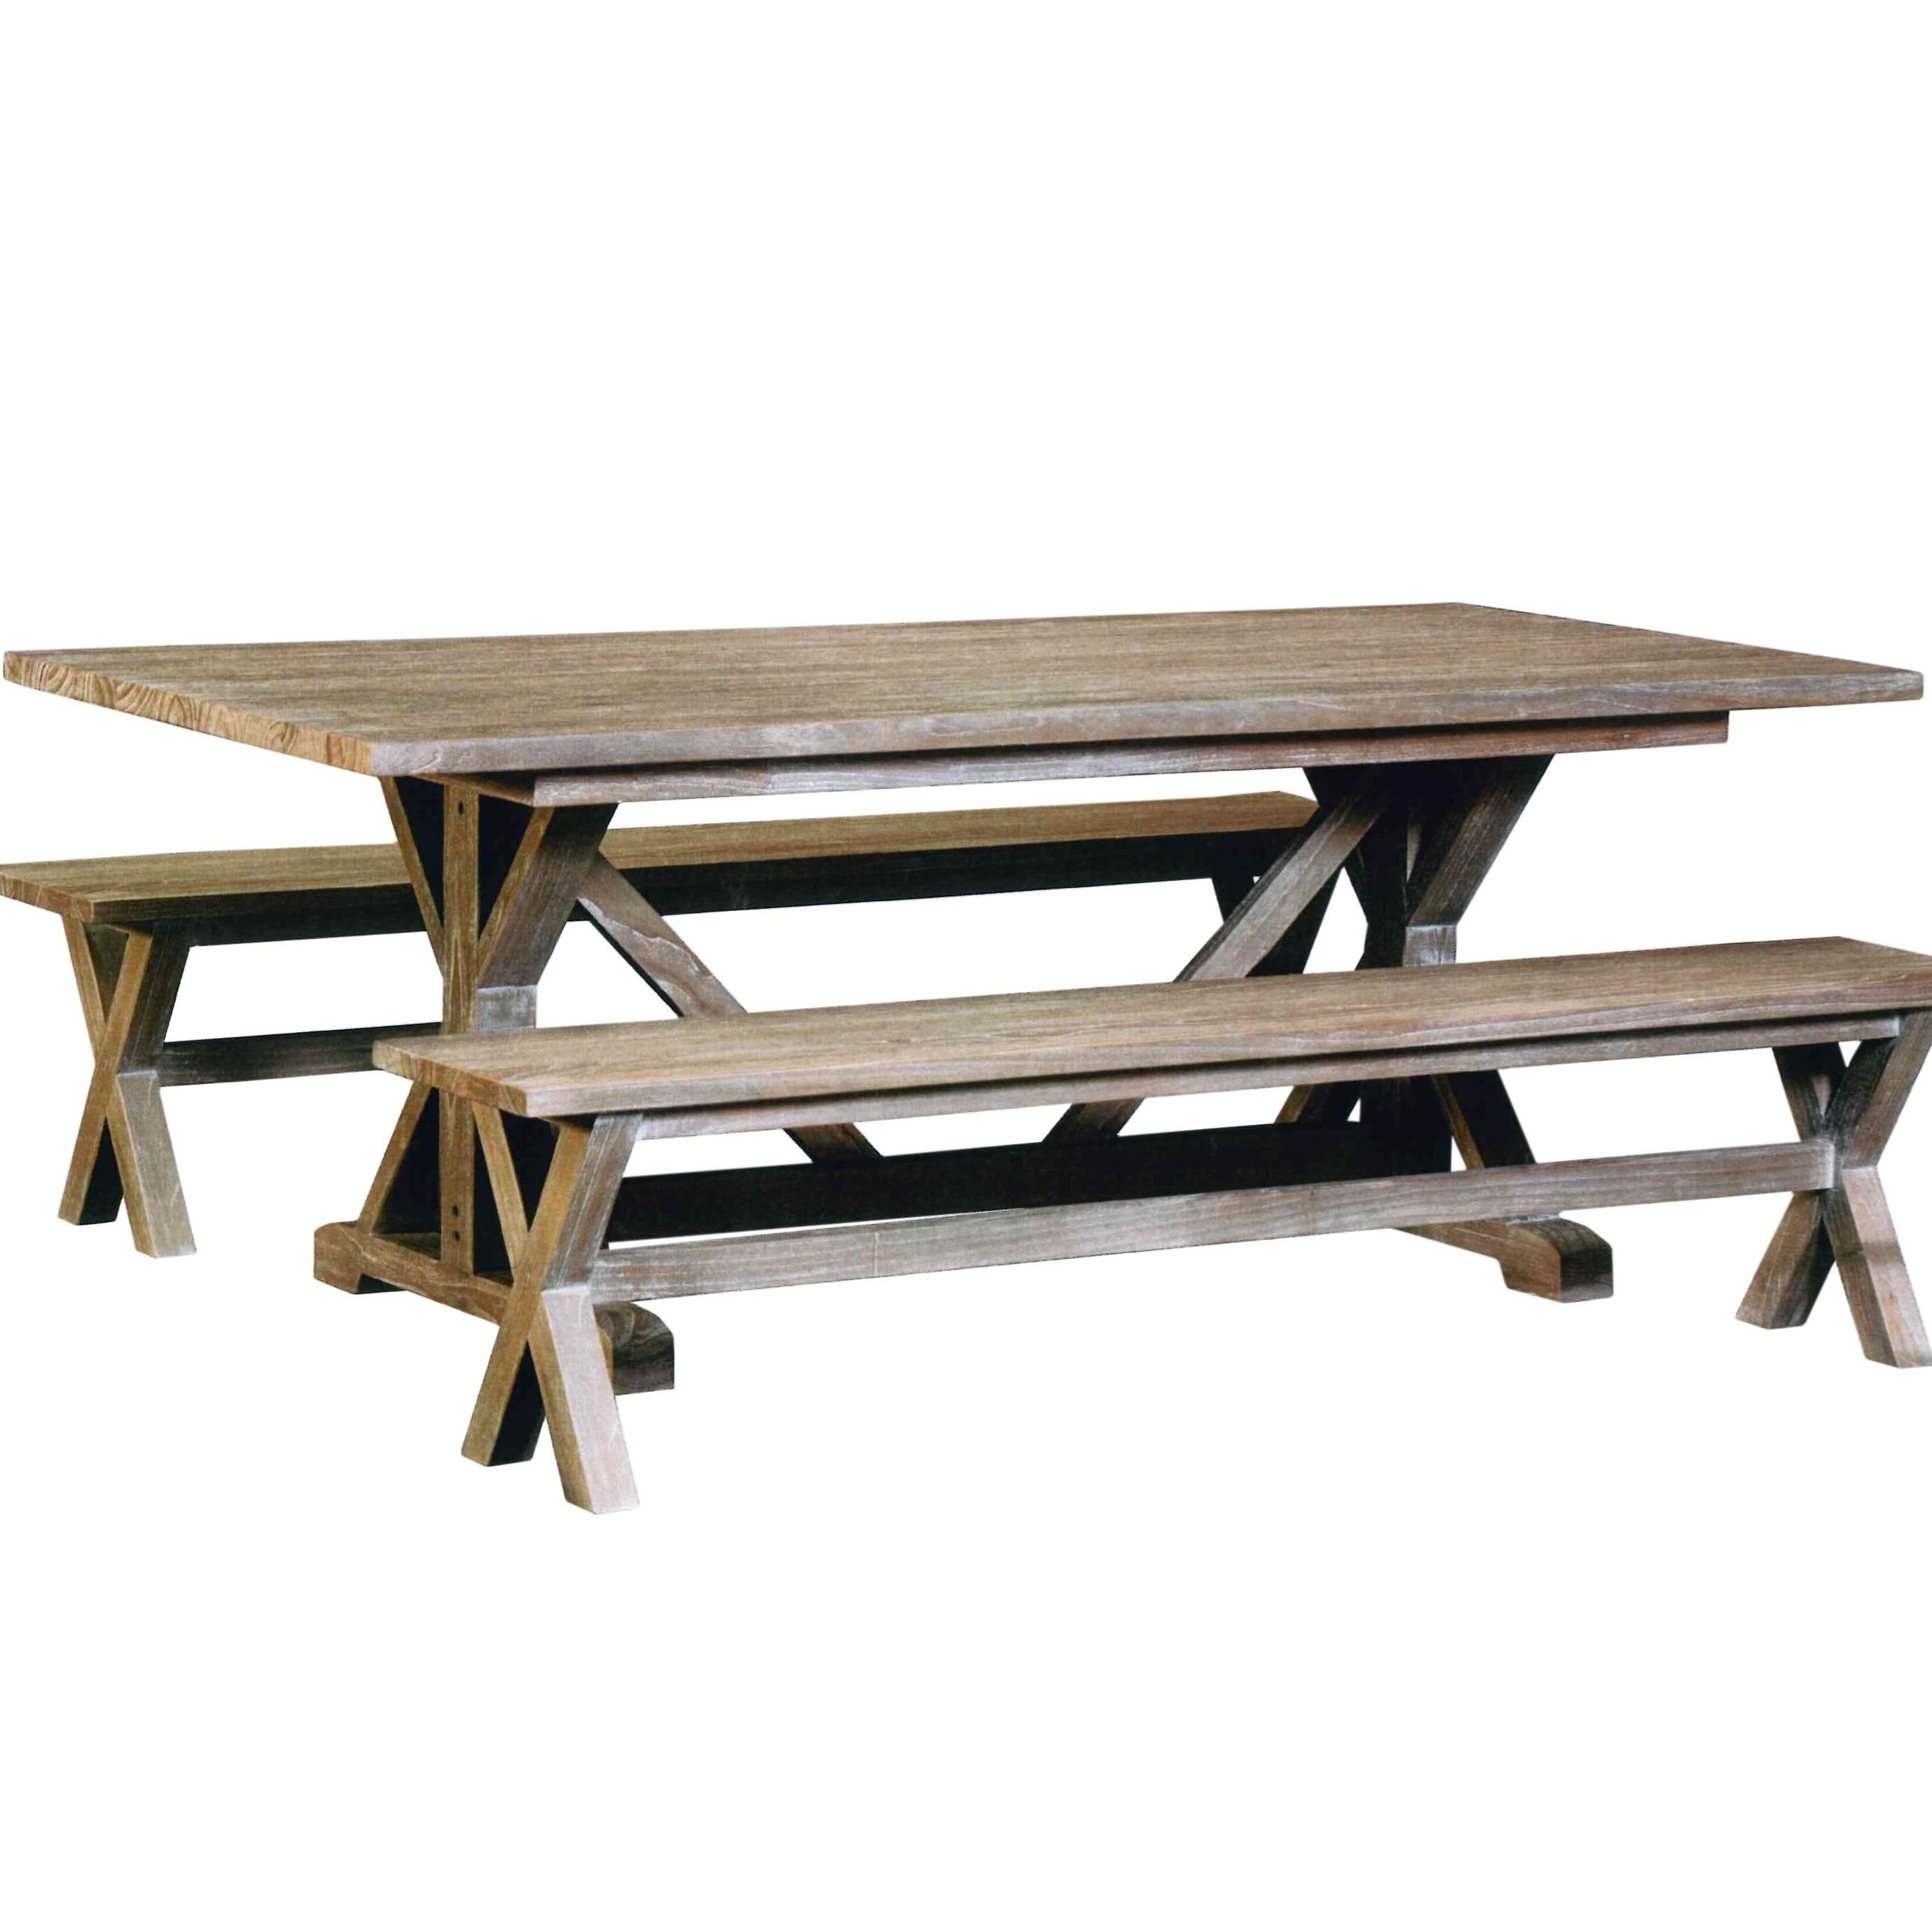 766 Dining Table by Capris Furniture at Esprit Decor Home Furnishings